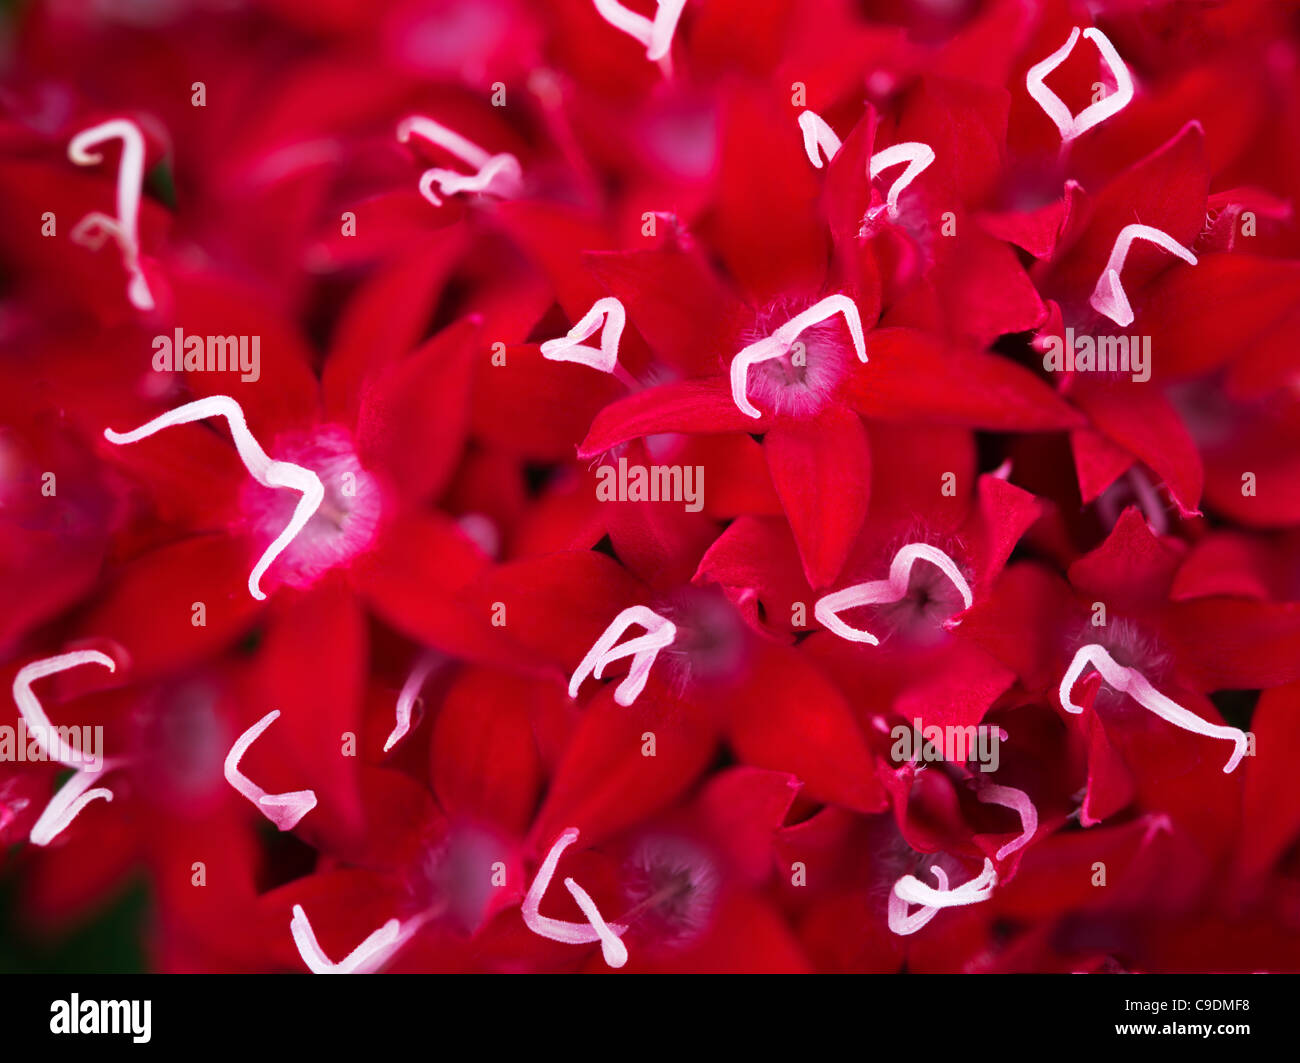 Close up of Grafiti Red Lace. - Stock Image